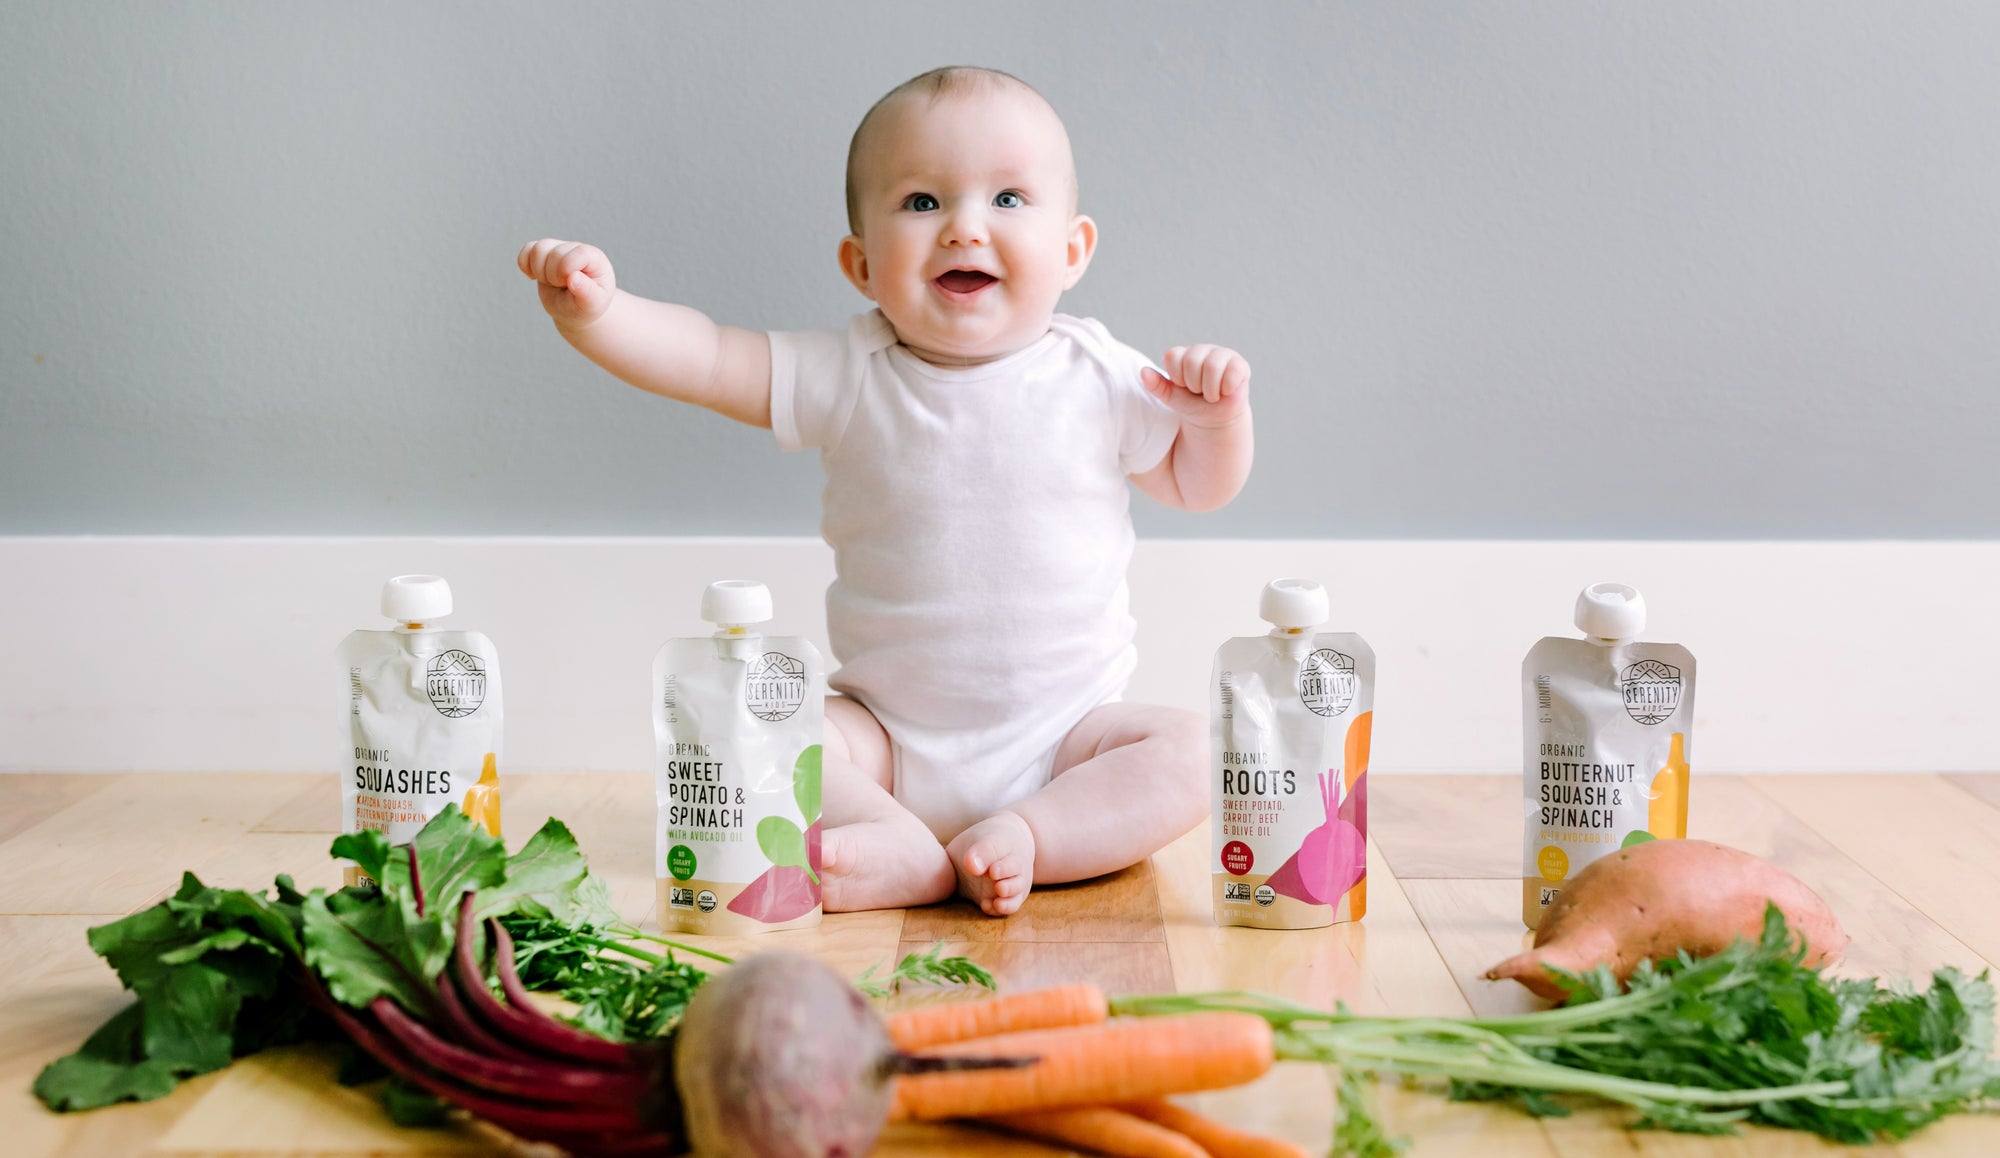 Serenity Kids at Expo West (N119) & Announces National Launch in Whole Foods Market